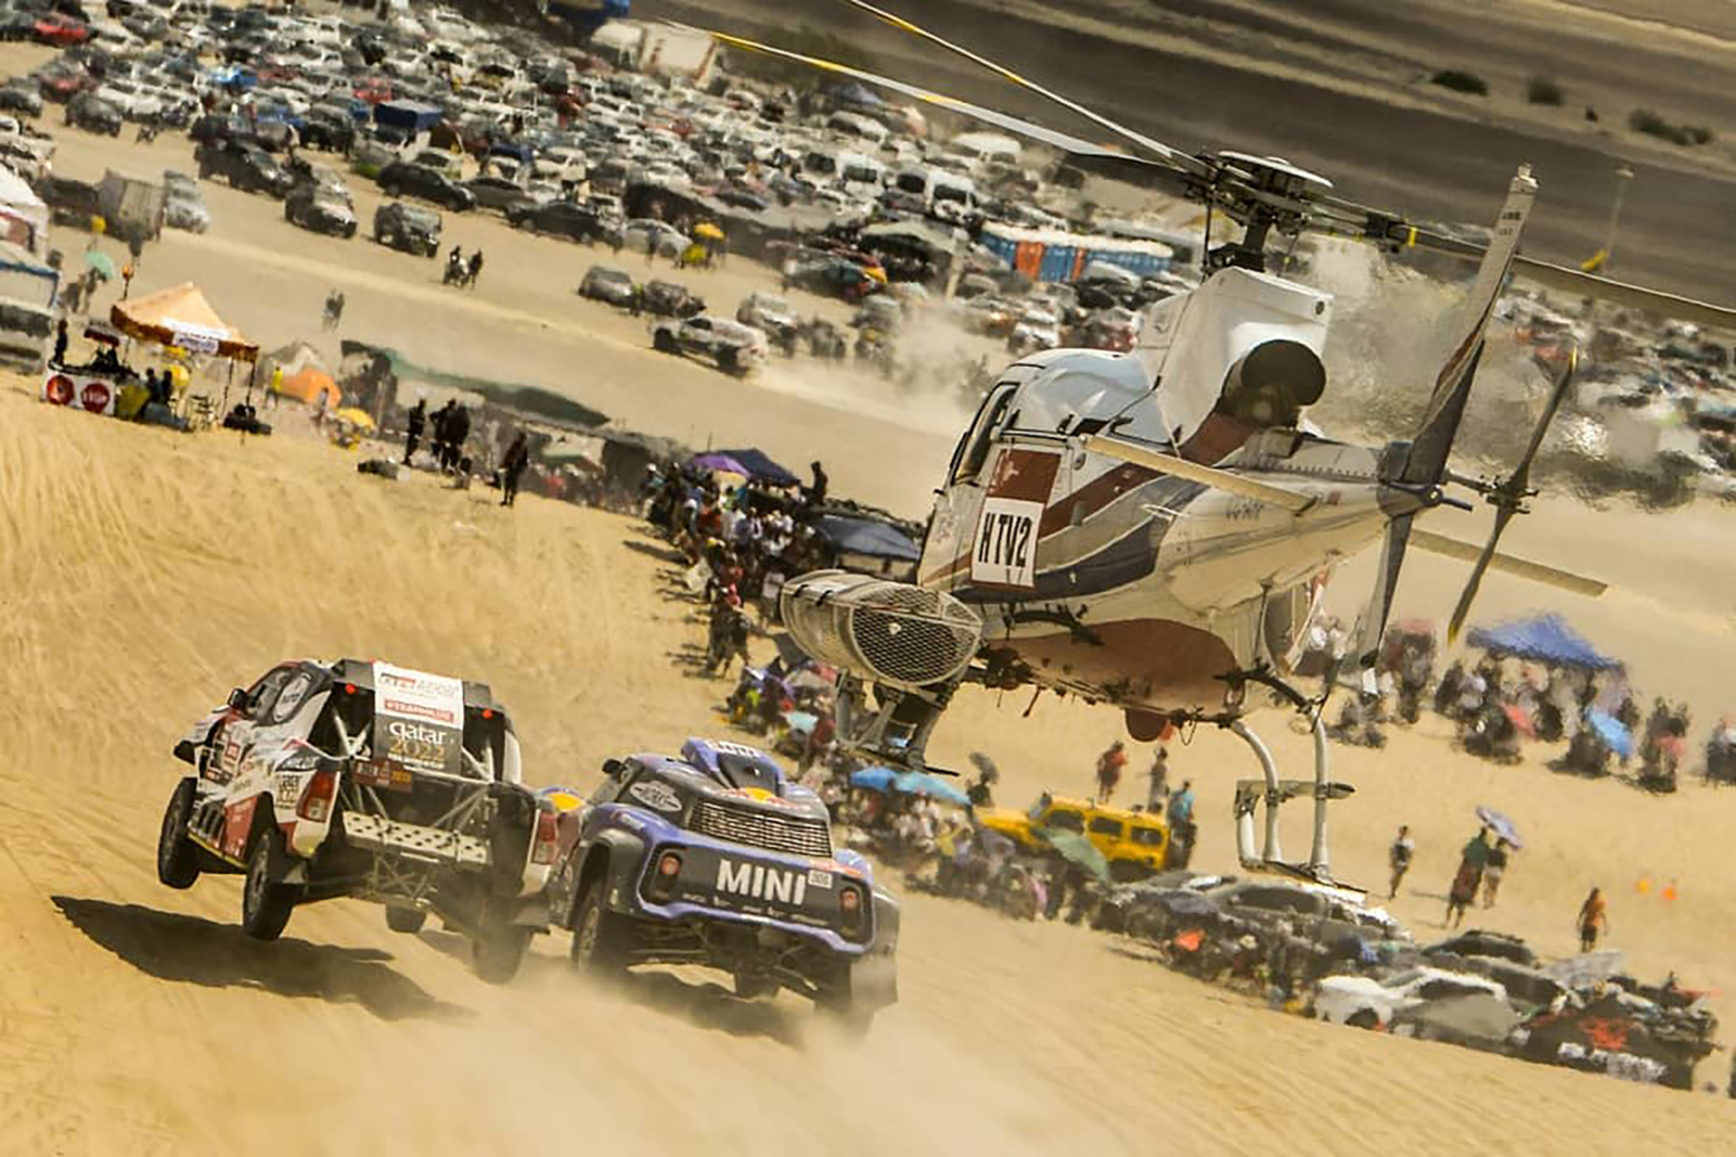 Dakar 2019 - photo by Charly Lopez